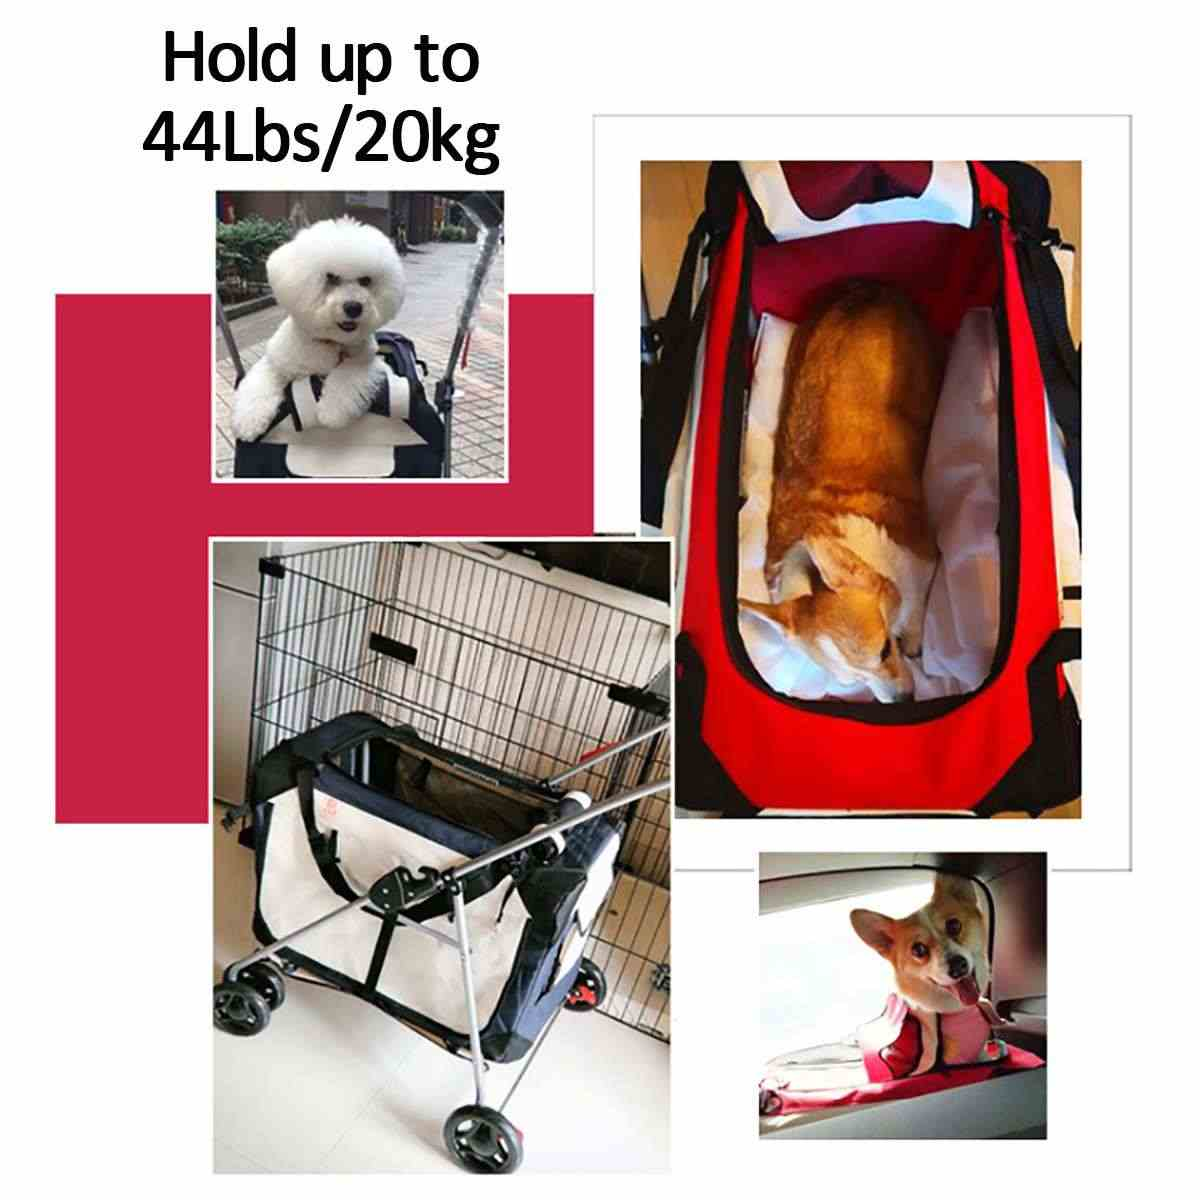 Large Four Wheel Pet Stroller 3-in-1 Soft Sided Detachable Pet Carrier Travel Crate and Pet Stroller Bearing 20KG